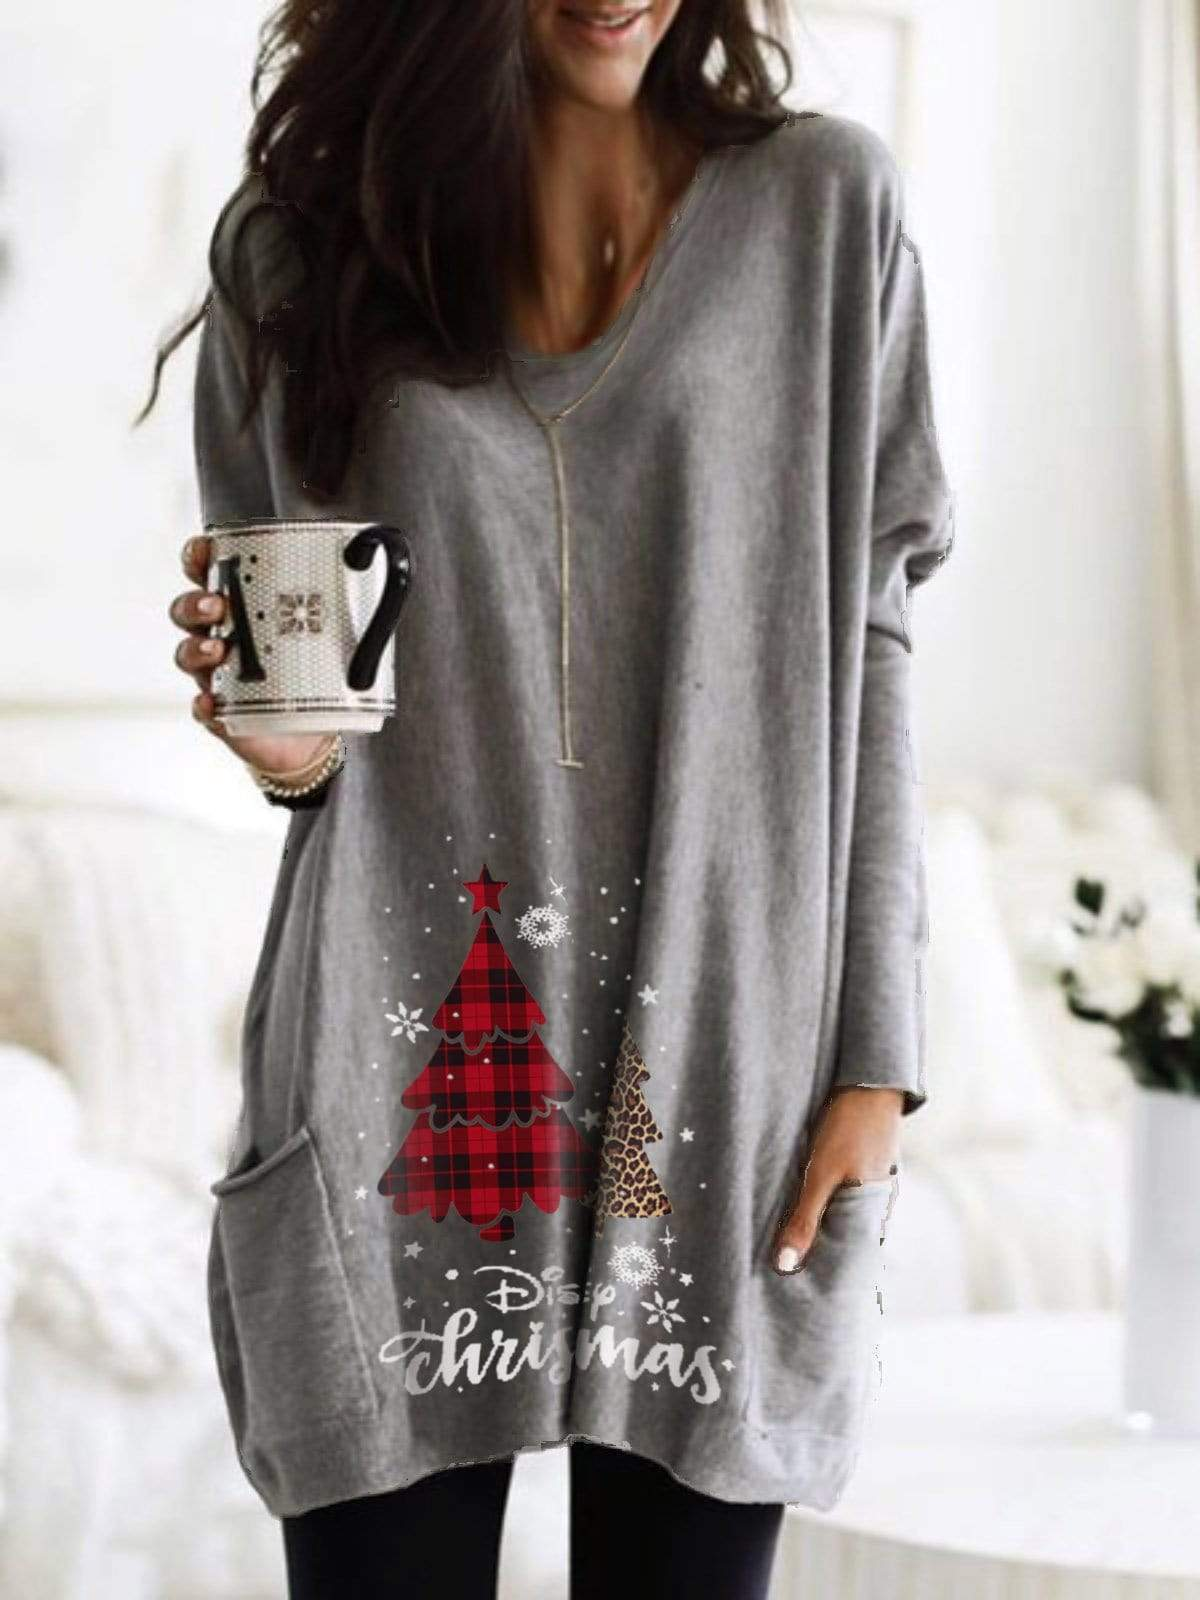 maochic.com MINI DRESSES S / Gray Women's Christmas Print Dress With Long Sleeves